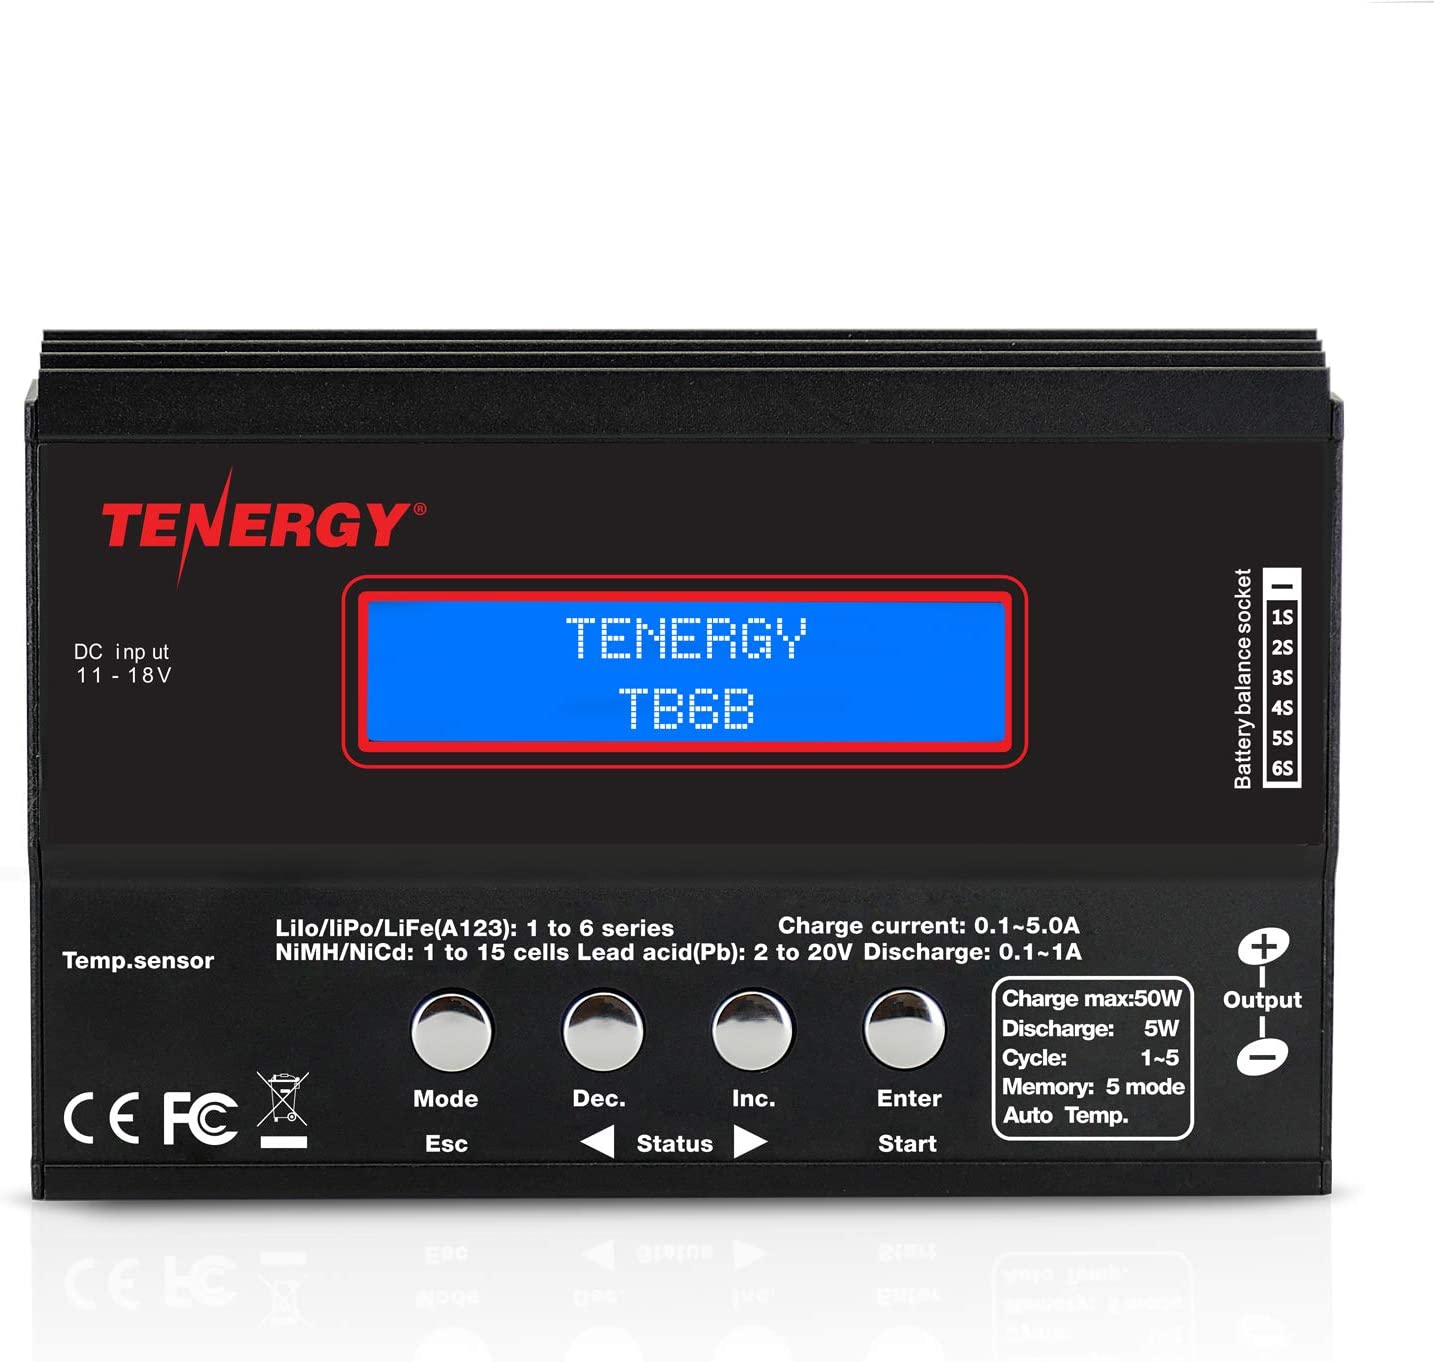 Tenergy TB6-B Balance Charger Discharger 1S-6S Digital Battery Pack Charger for NiMH/NiCD/Li-PO/Li-Fe Packs LCD Hobby Battery Charger w/ Tamiya/JST/EC3/HiTec/Deans Connectors + Power Supply 01435: Toys & Games